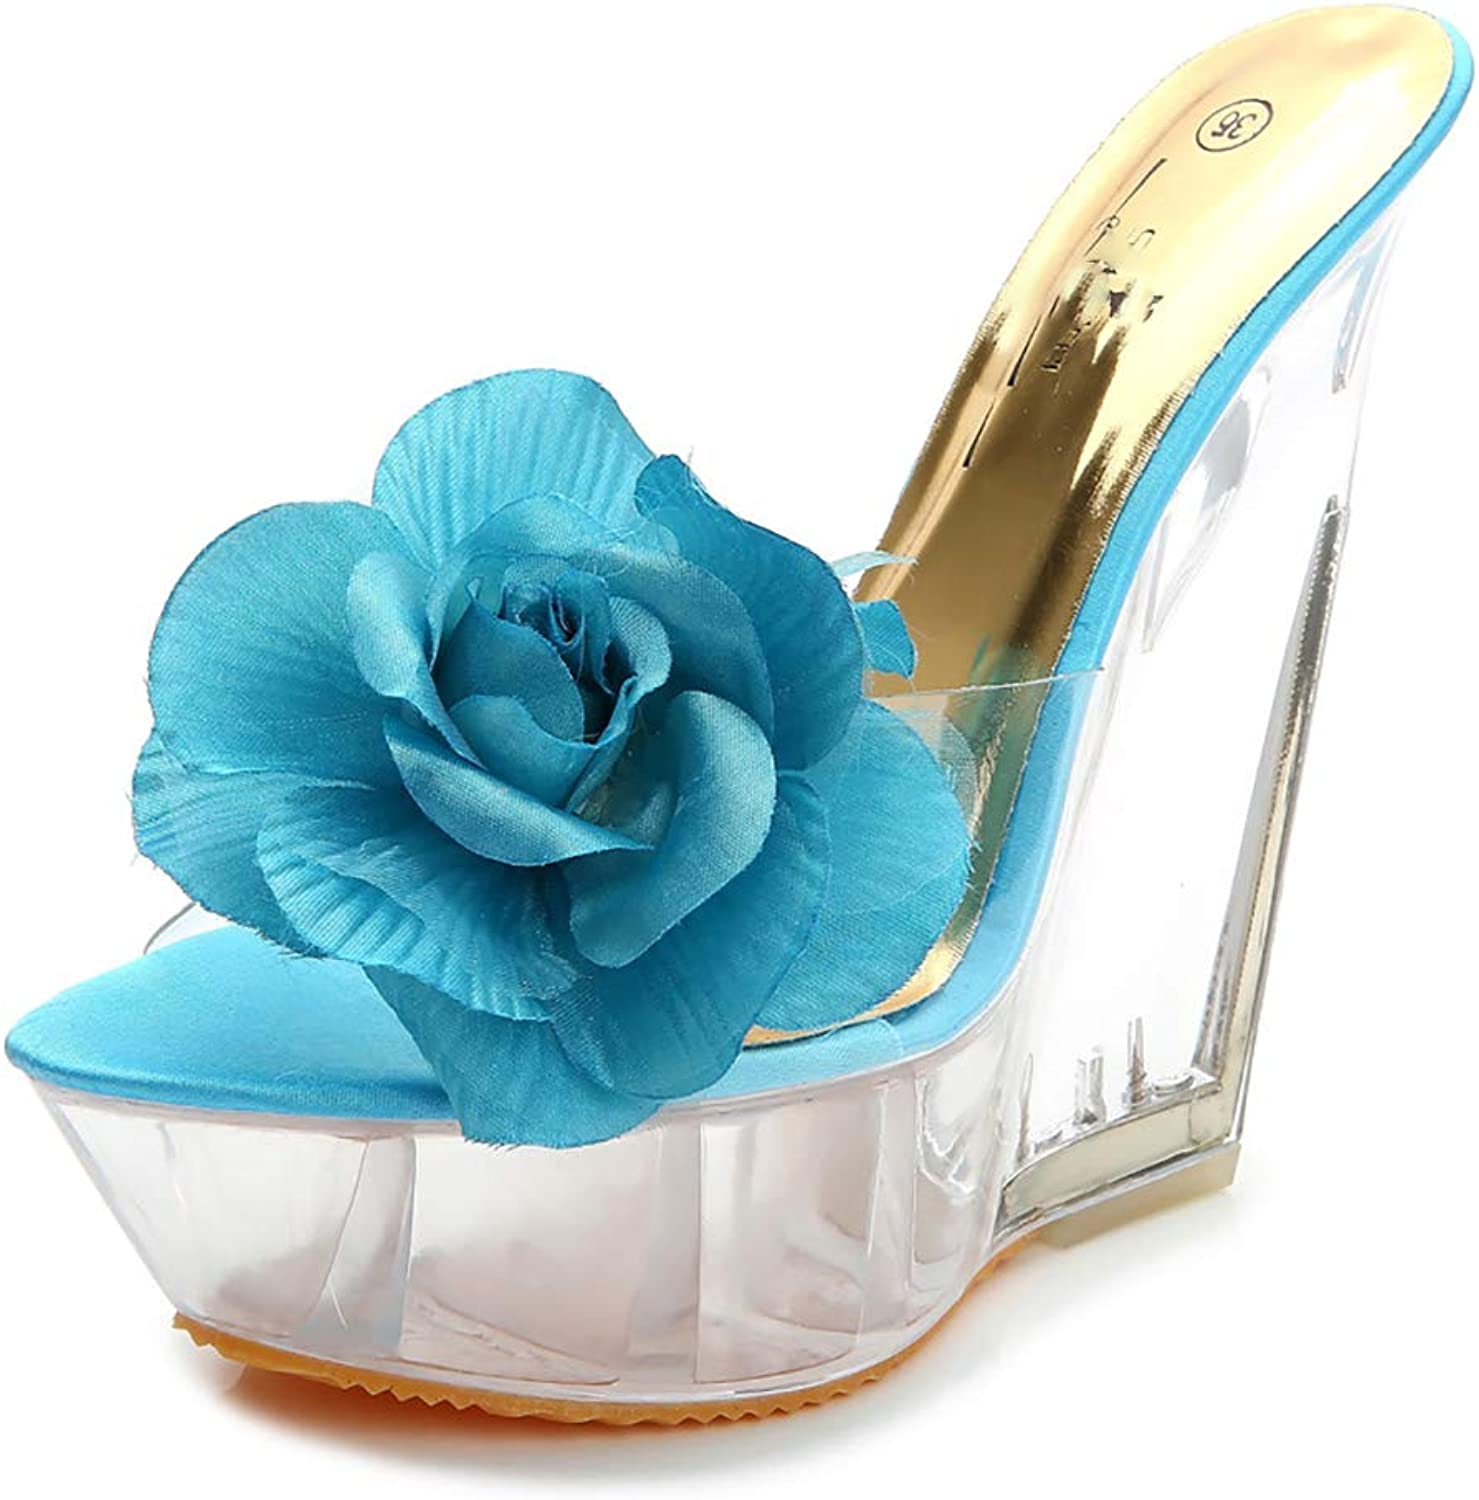 Womens Wedges Women's shoes Open Toe Ladies Flowers High Heel Crystal shoes Platform Party shoes Ultra High Heel Slippers